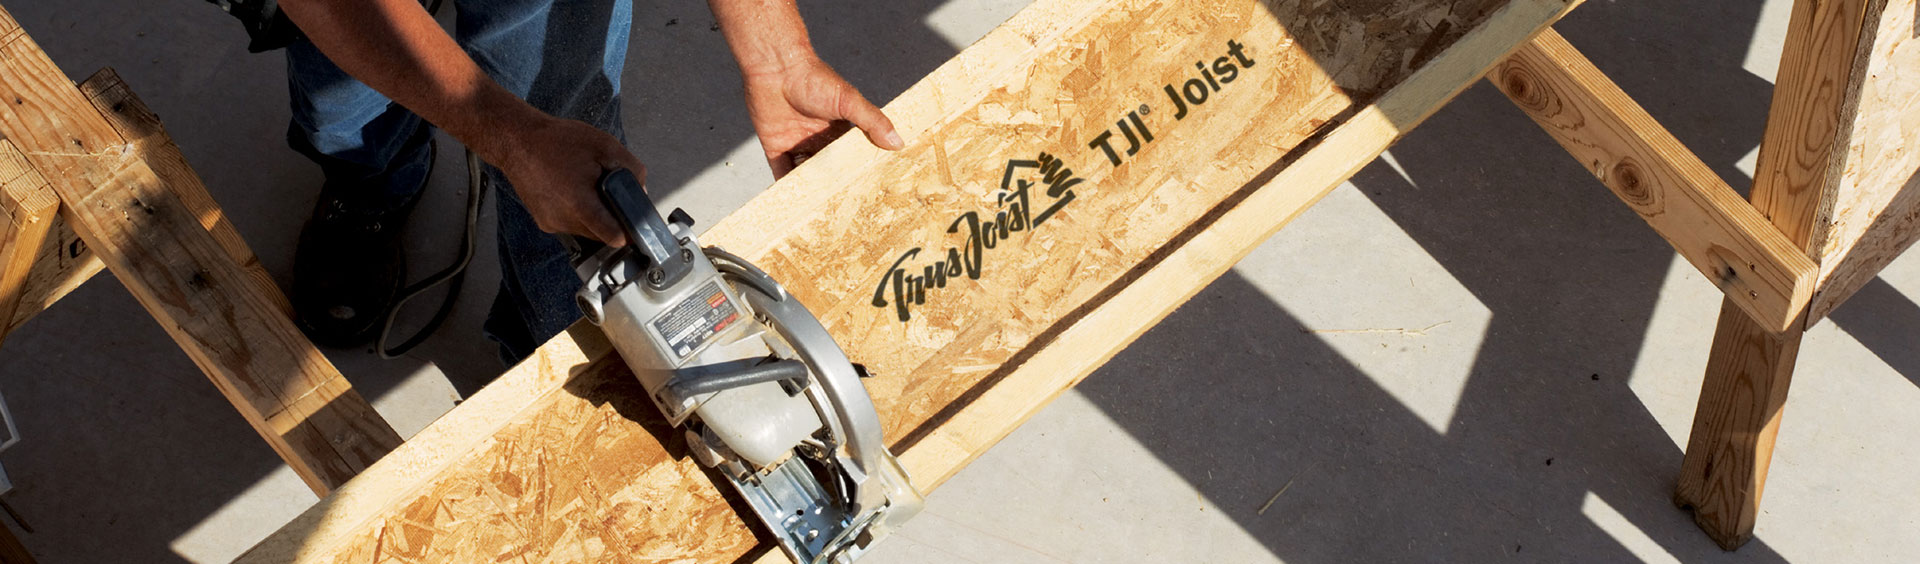 Trus Joist for high performance floors